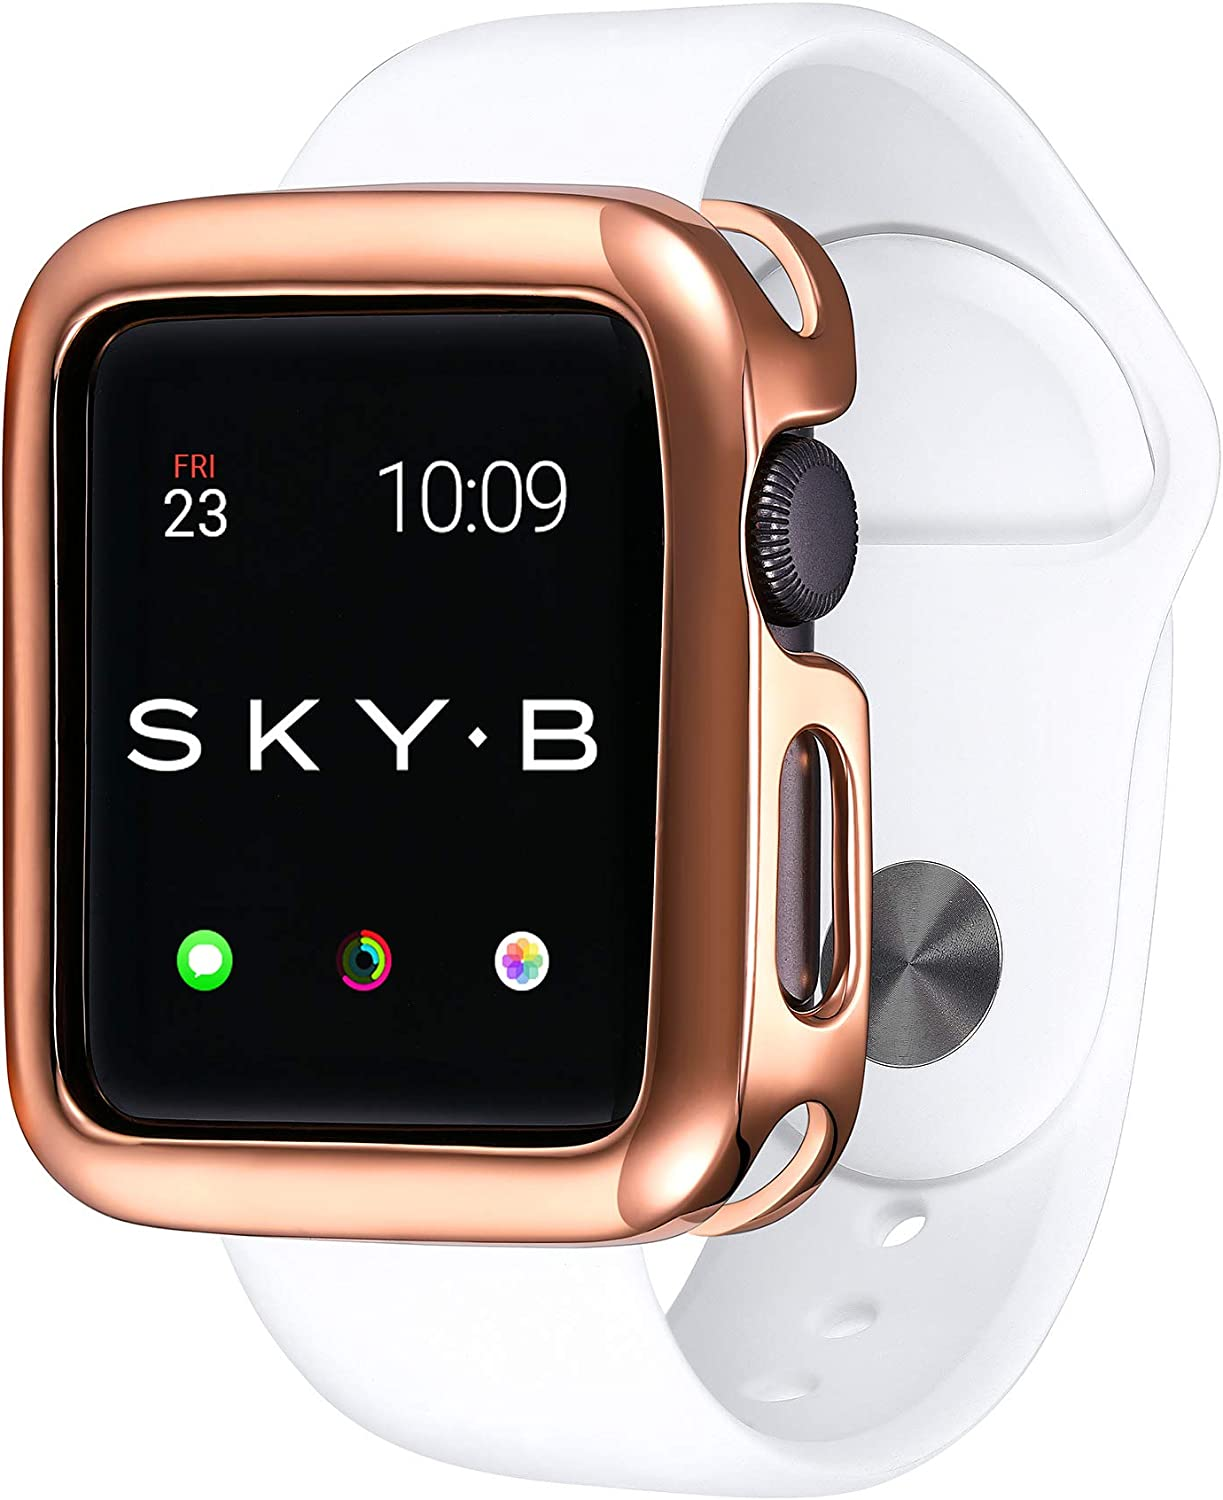 SKYB Minimalist Rose Gold Protective Jewelry Case for Apple Watch Series 1, 2, 3, 4, 5 Devices - 38mm